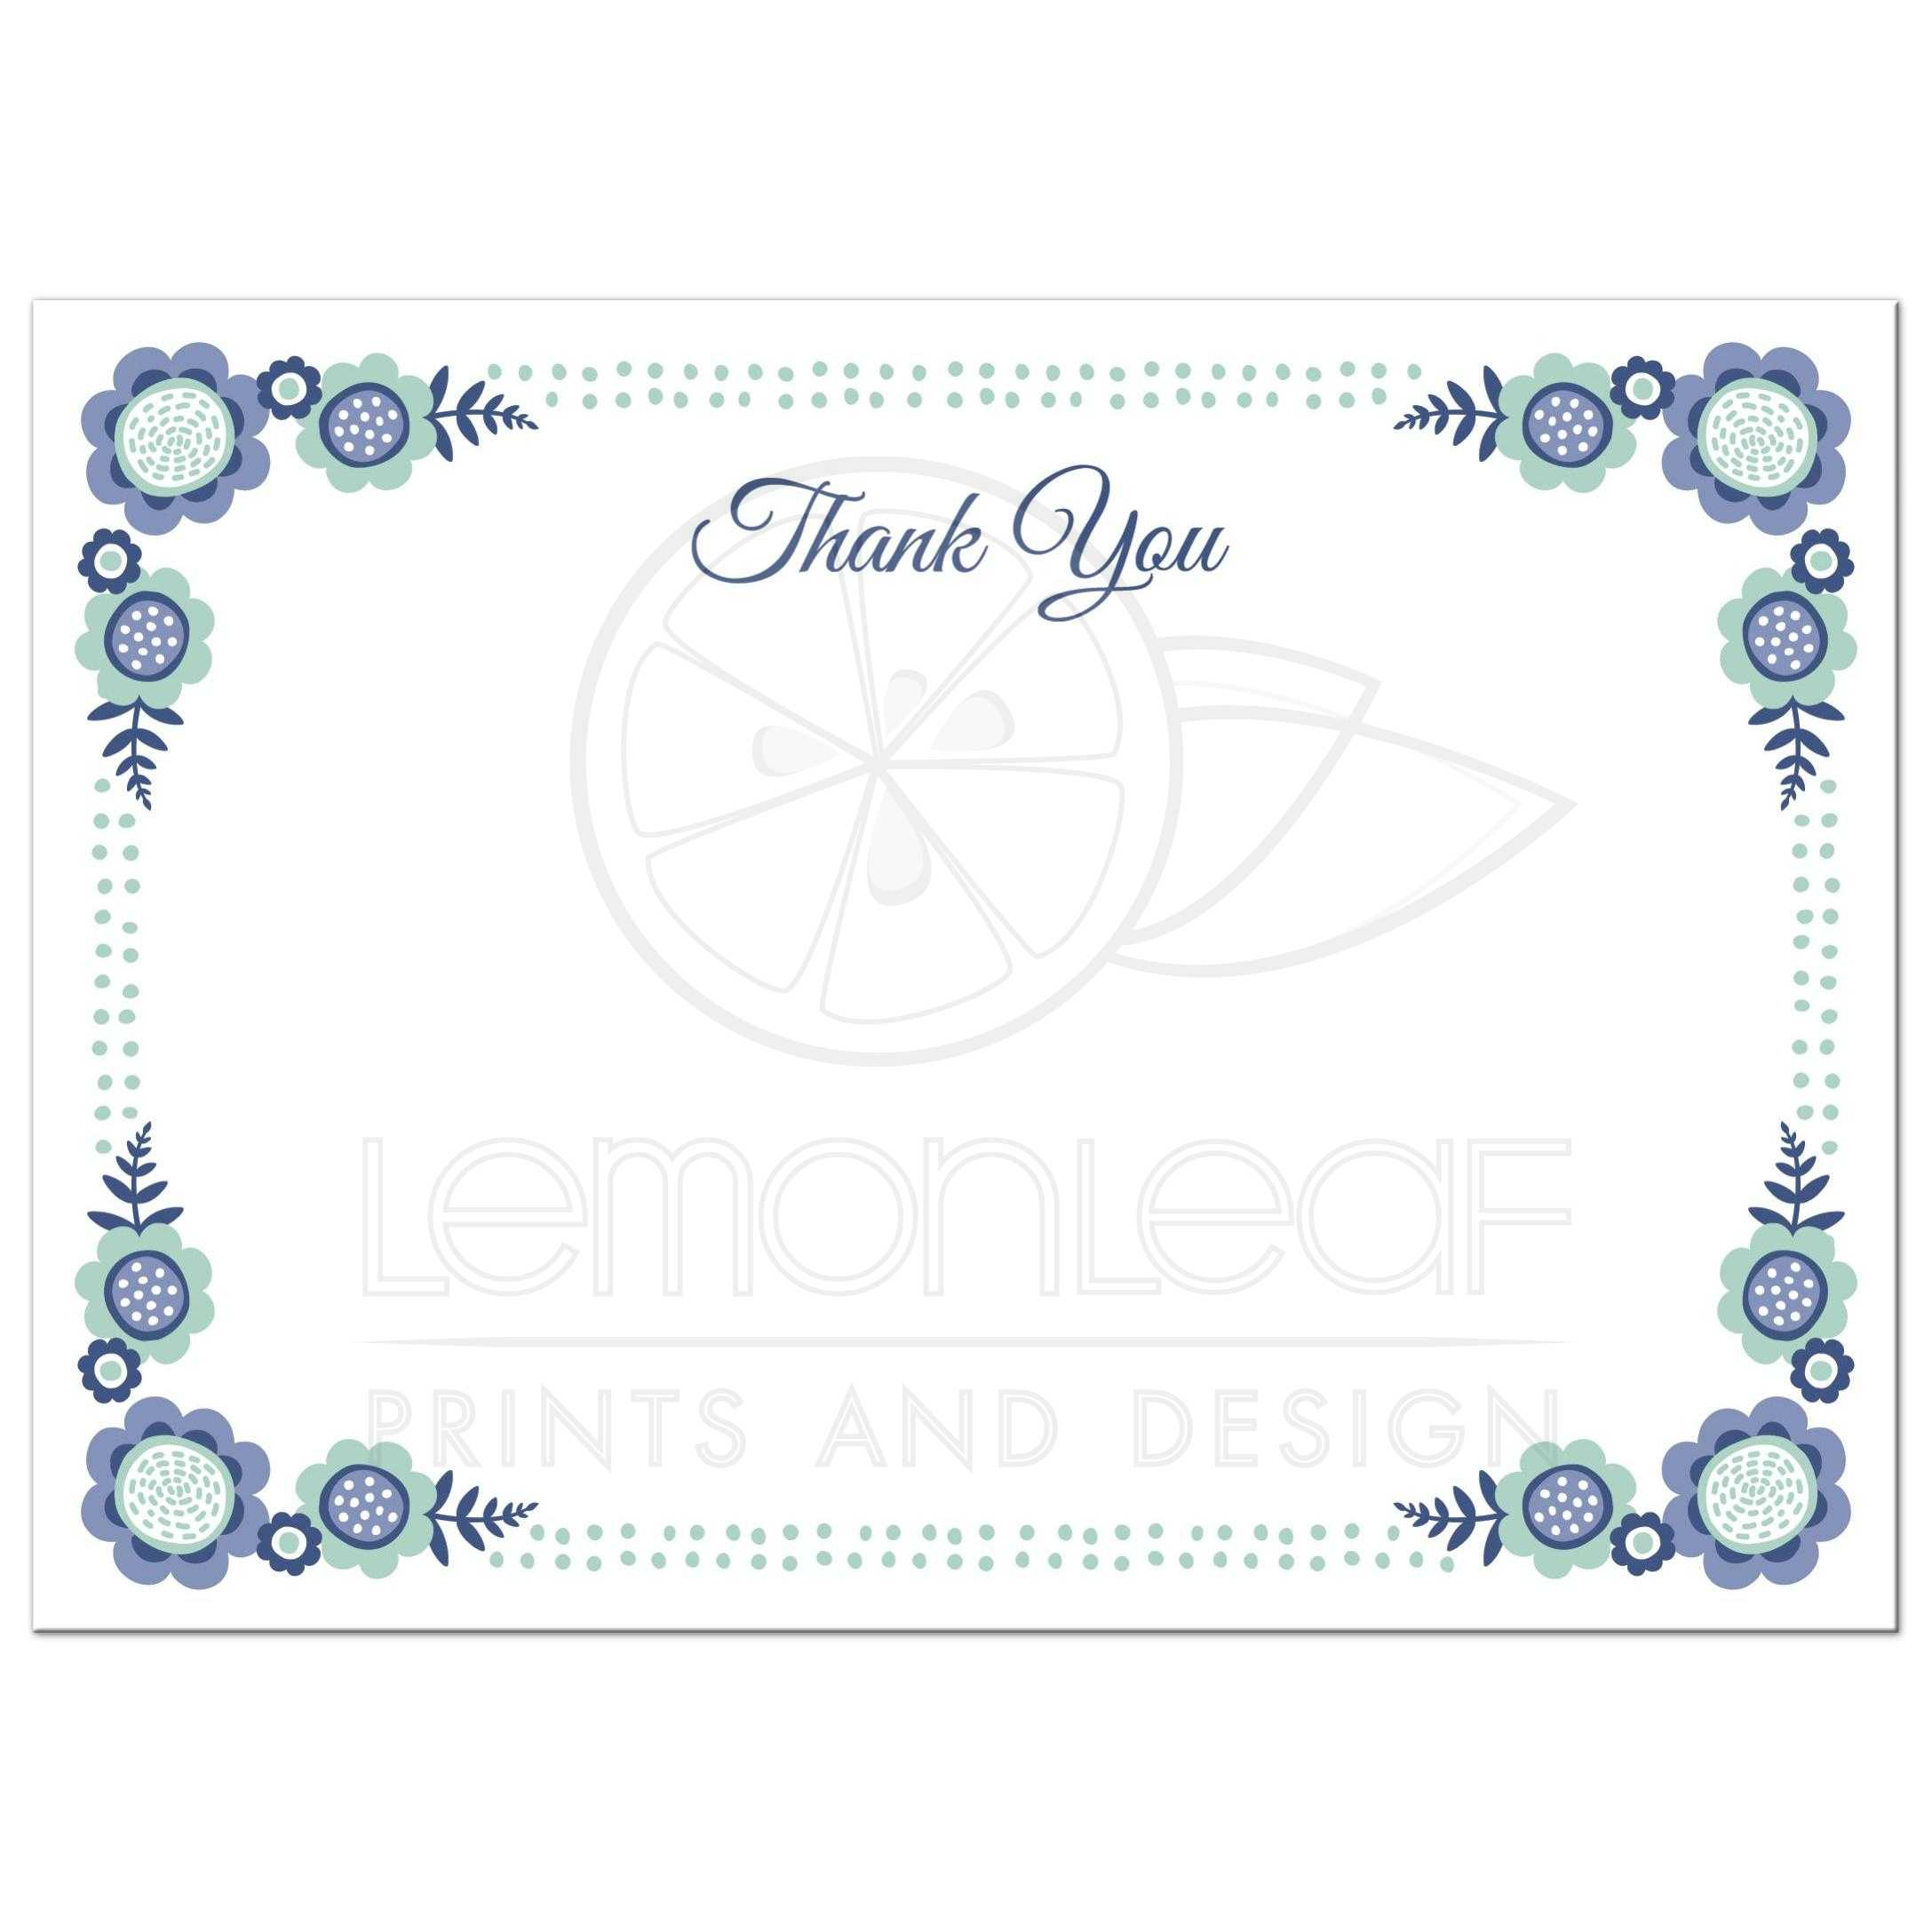 Invitation Card Borders as awesome invitations sample